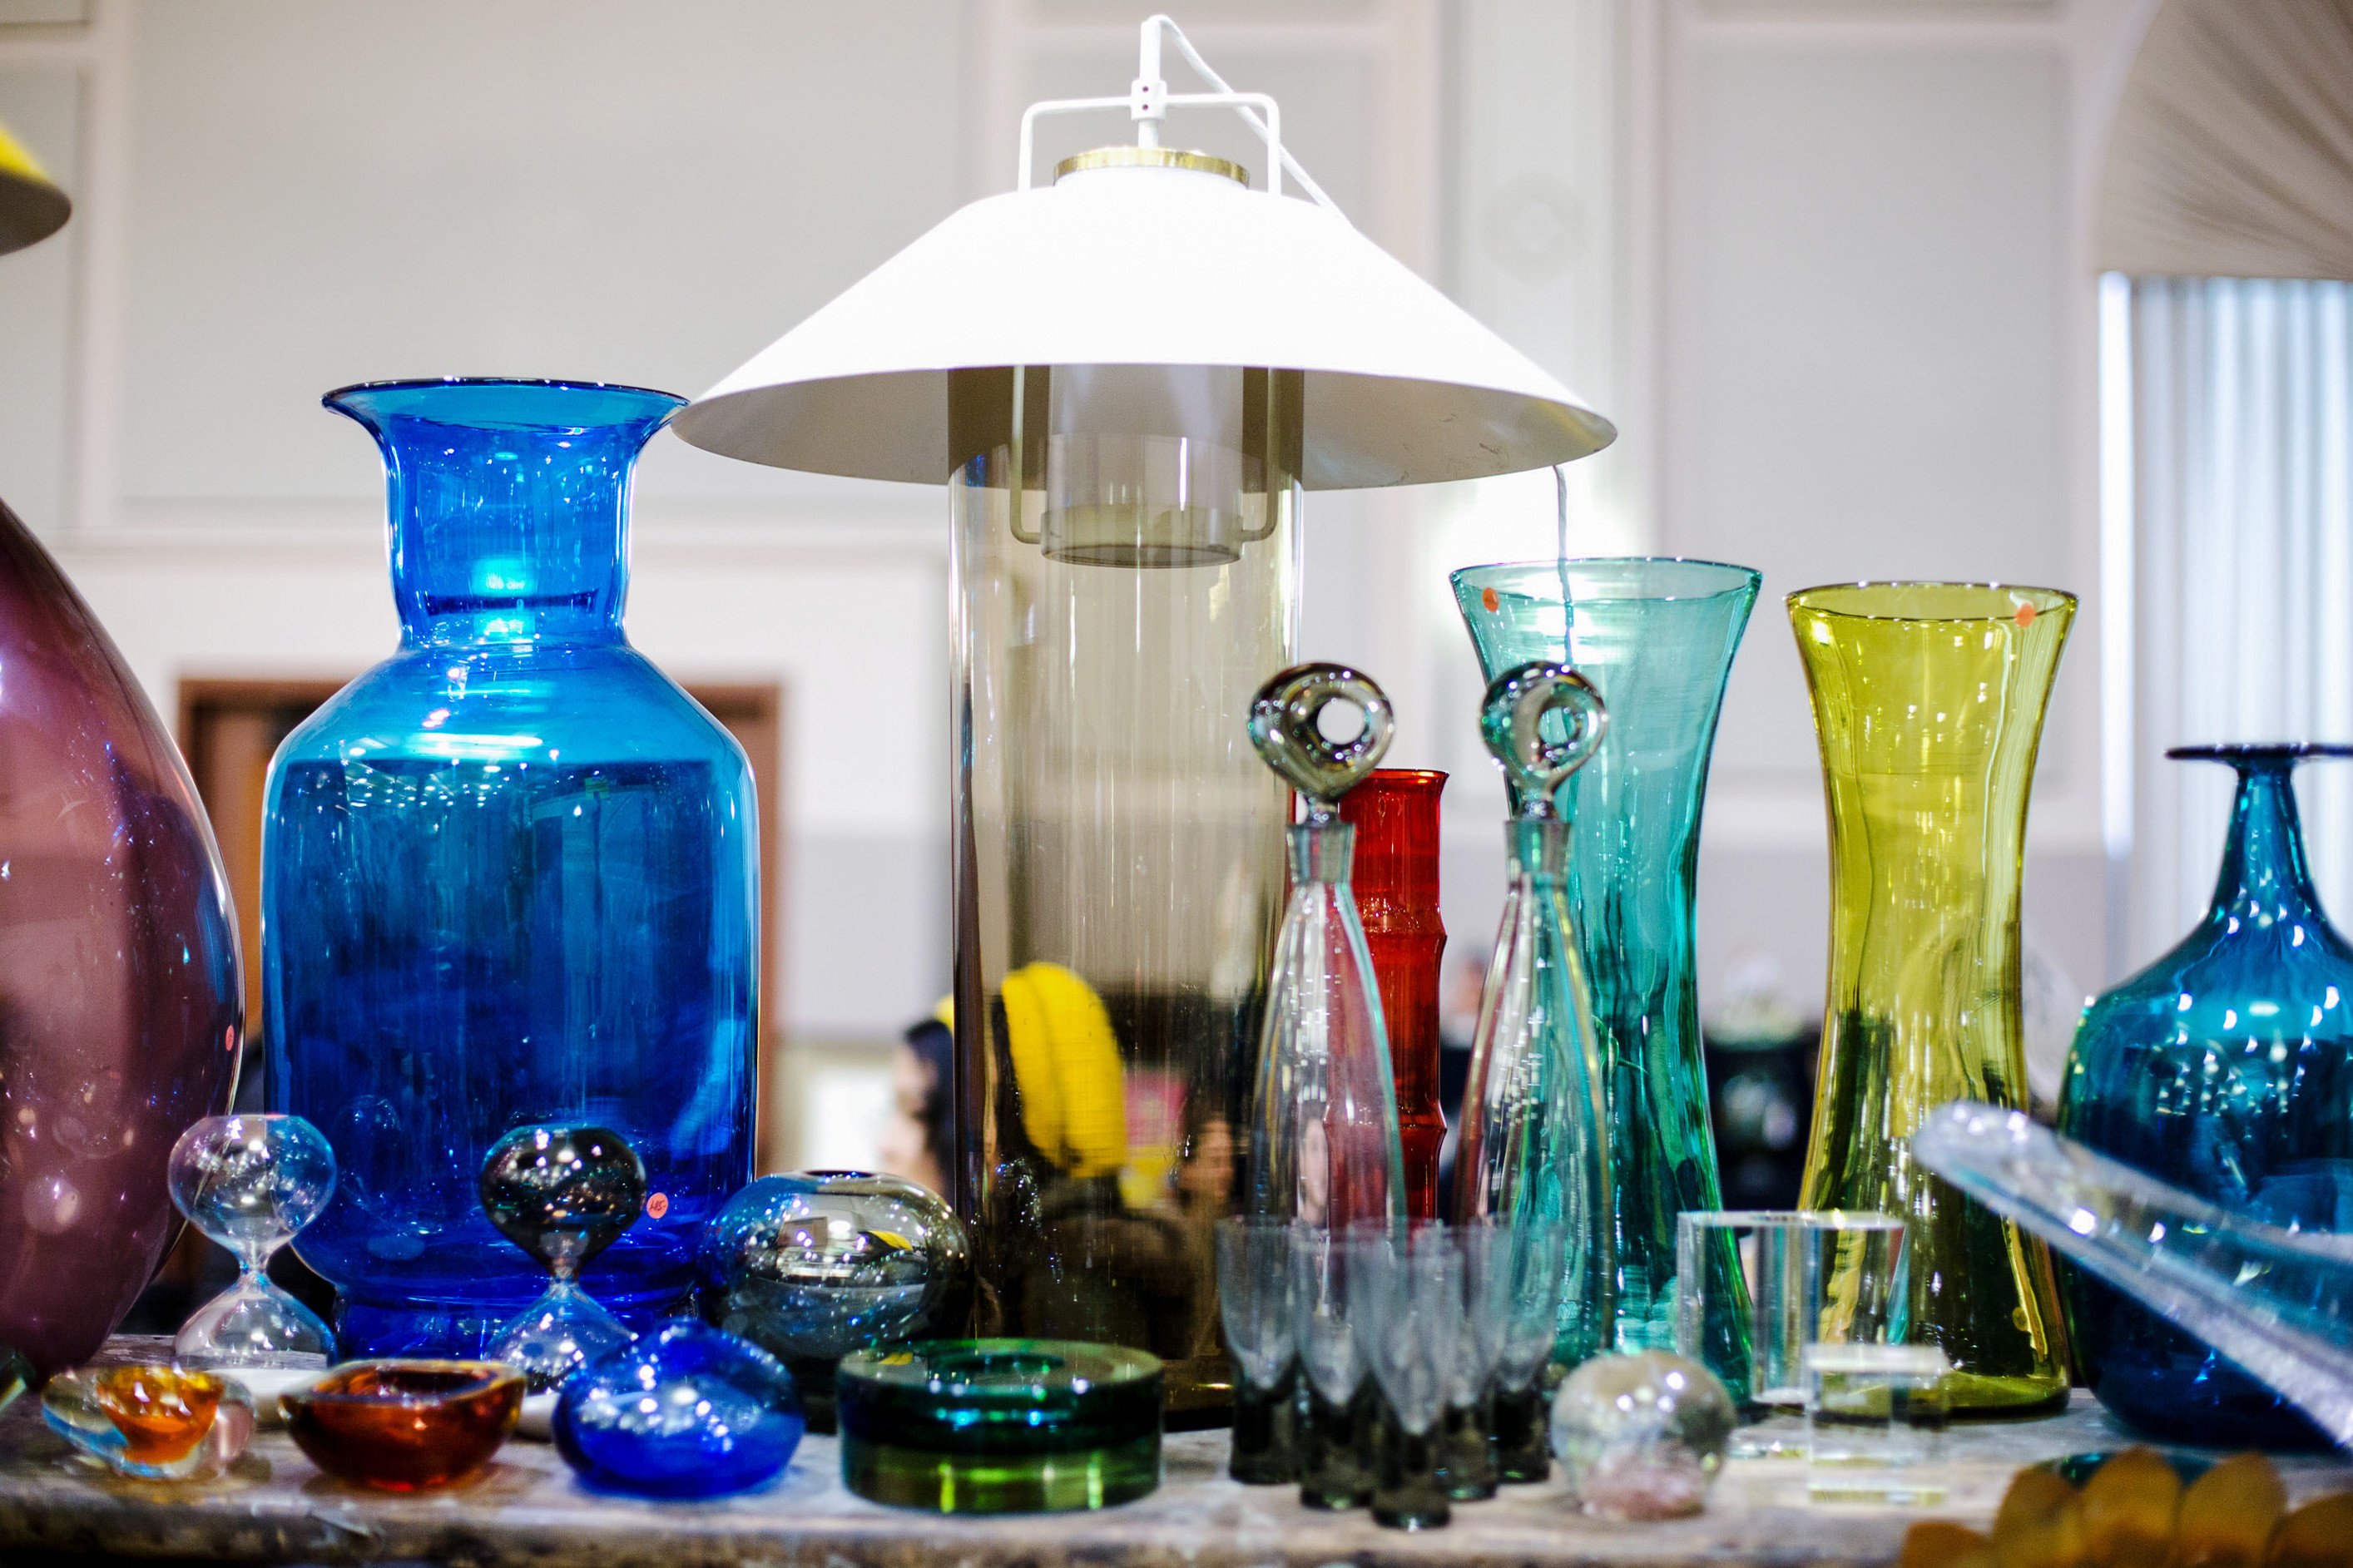 Arts + Culture Food + Drink Hotels Weekend Getaways table wall indoor glass product bottle drinkware glass bottle blue material interior design several